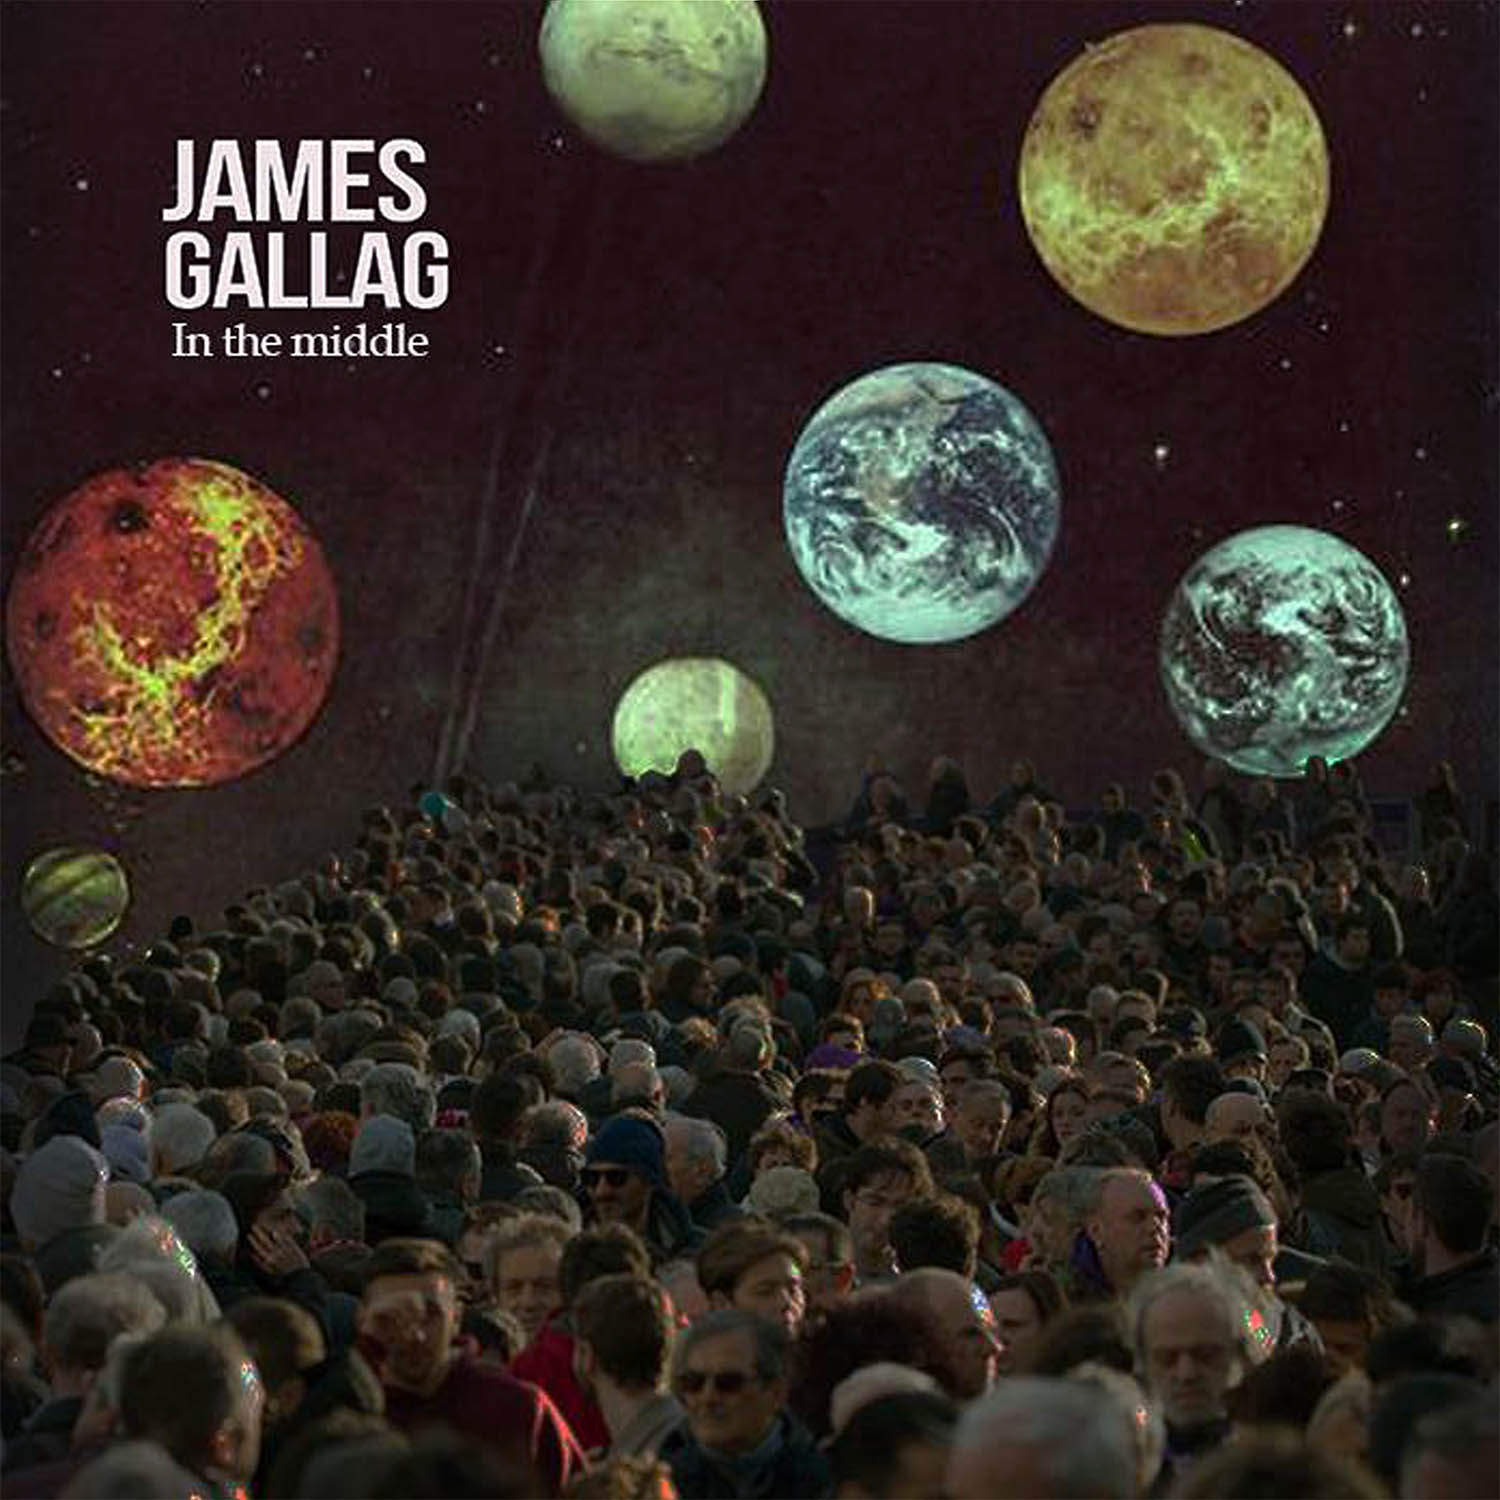 James Gallag - In the middle